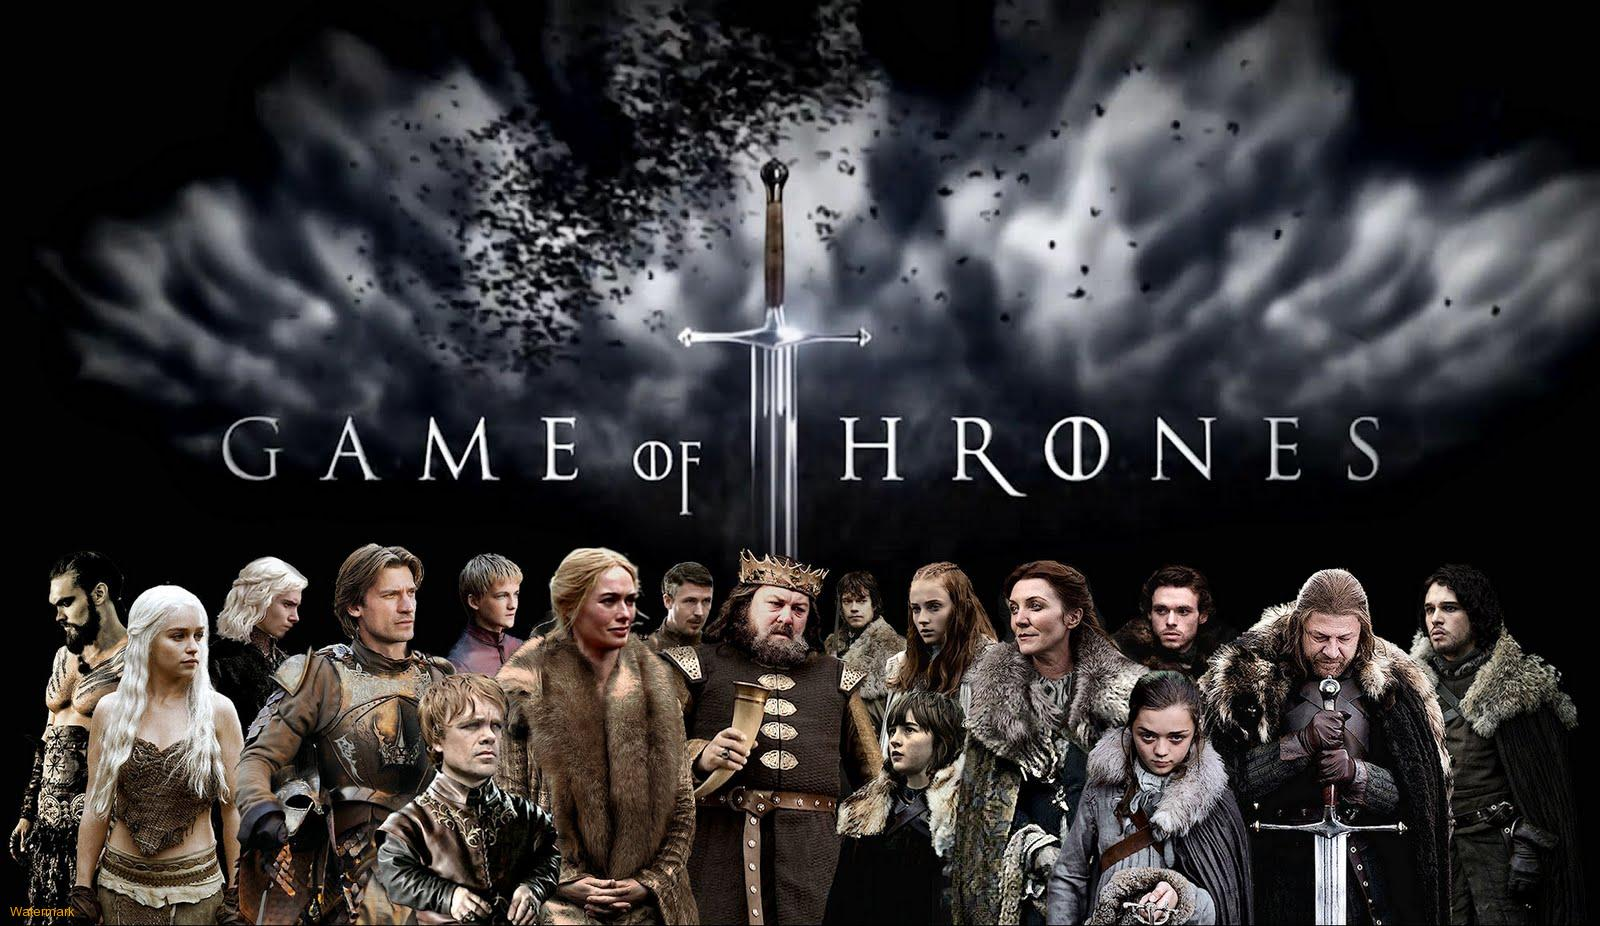 Game of Thrones Cast - First Season